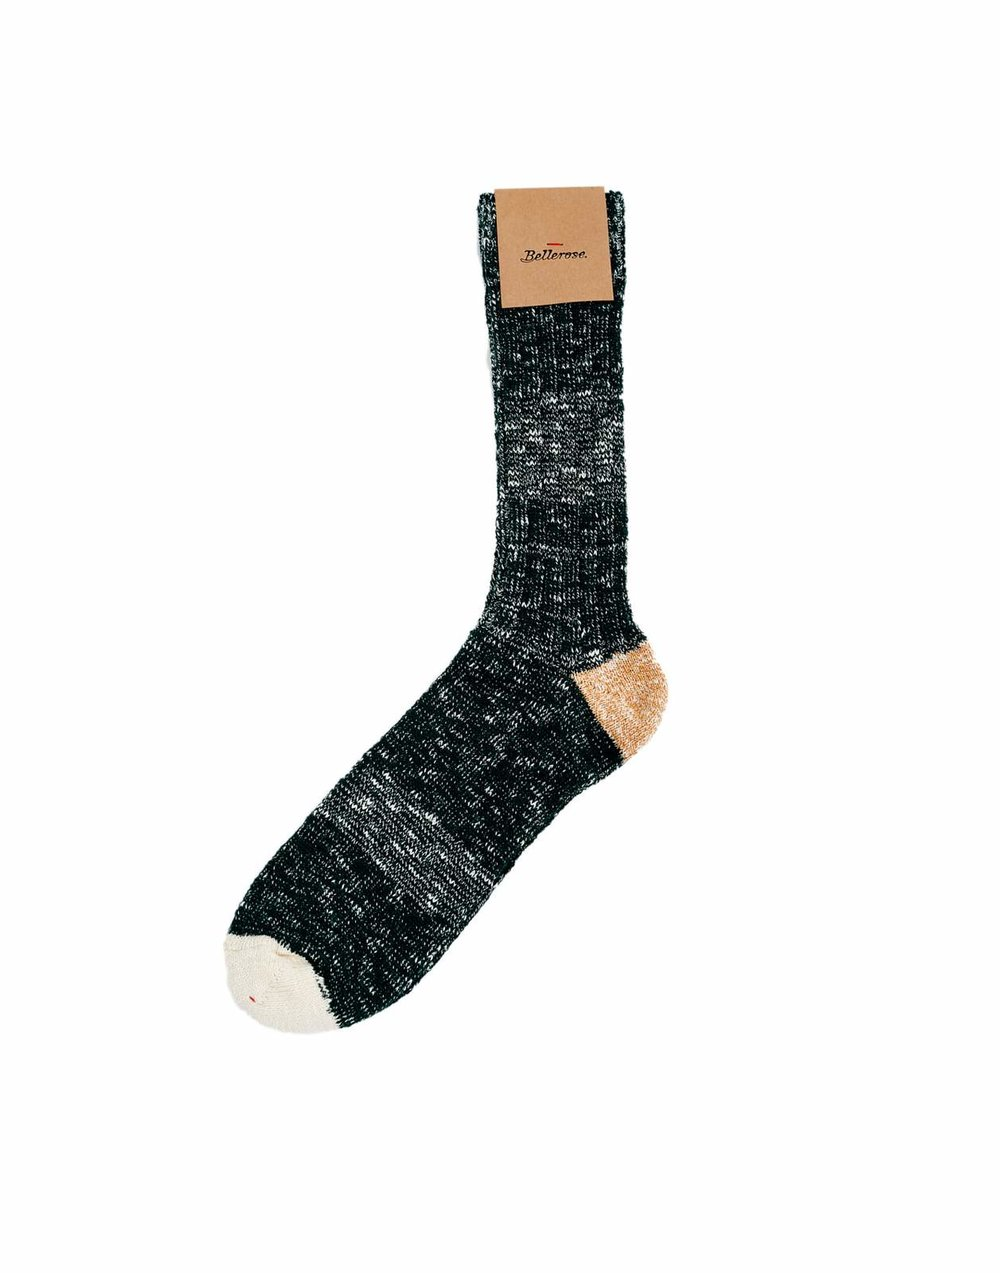 socks_filer0903c_combo_1_1_1_1600x1600.jpg